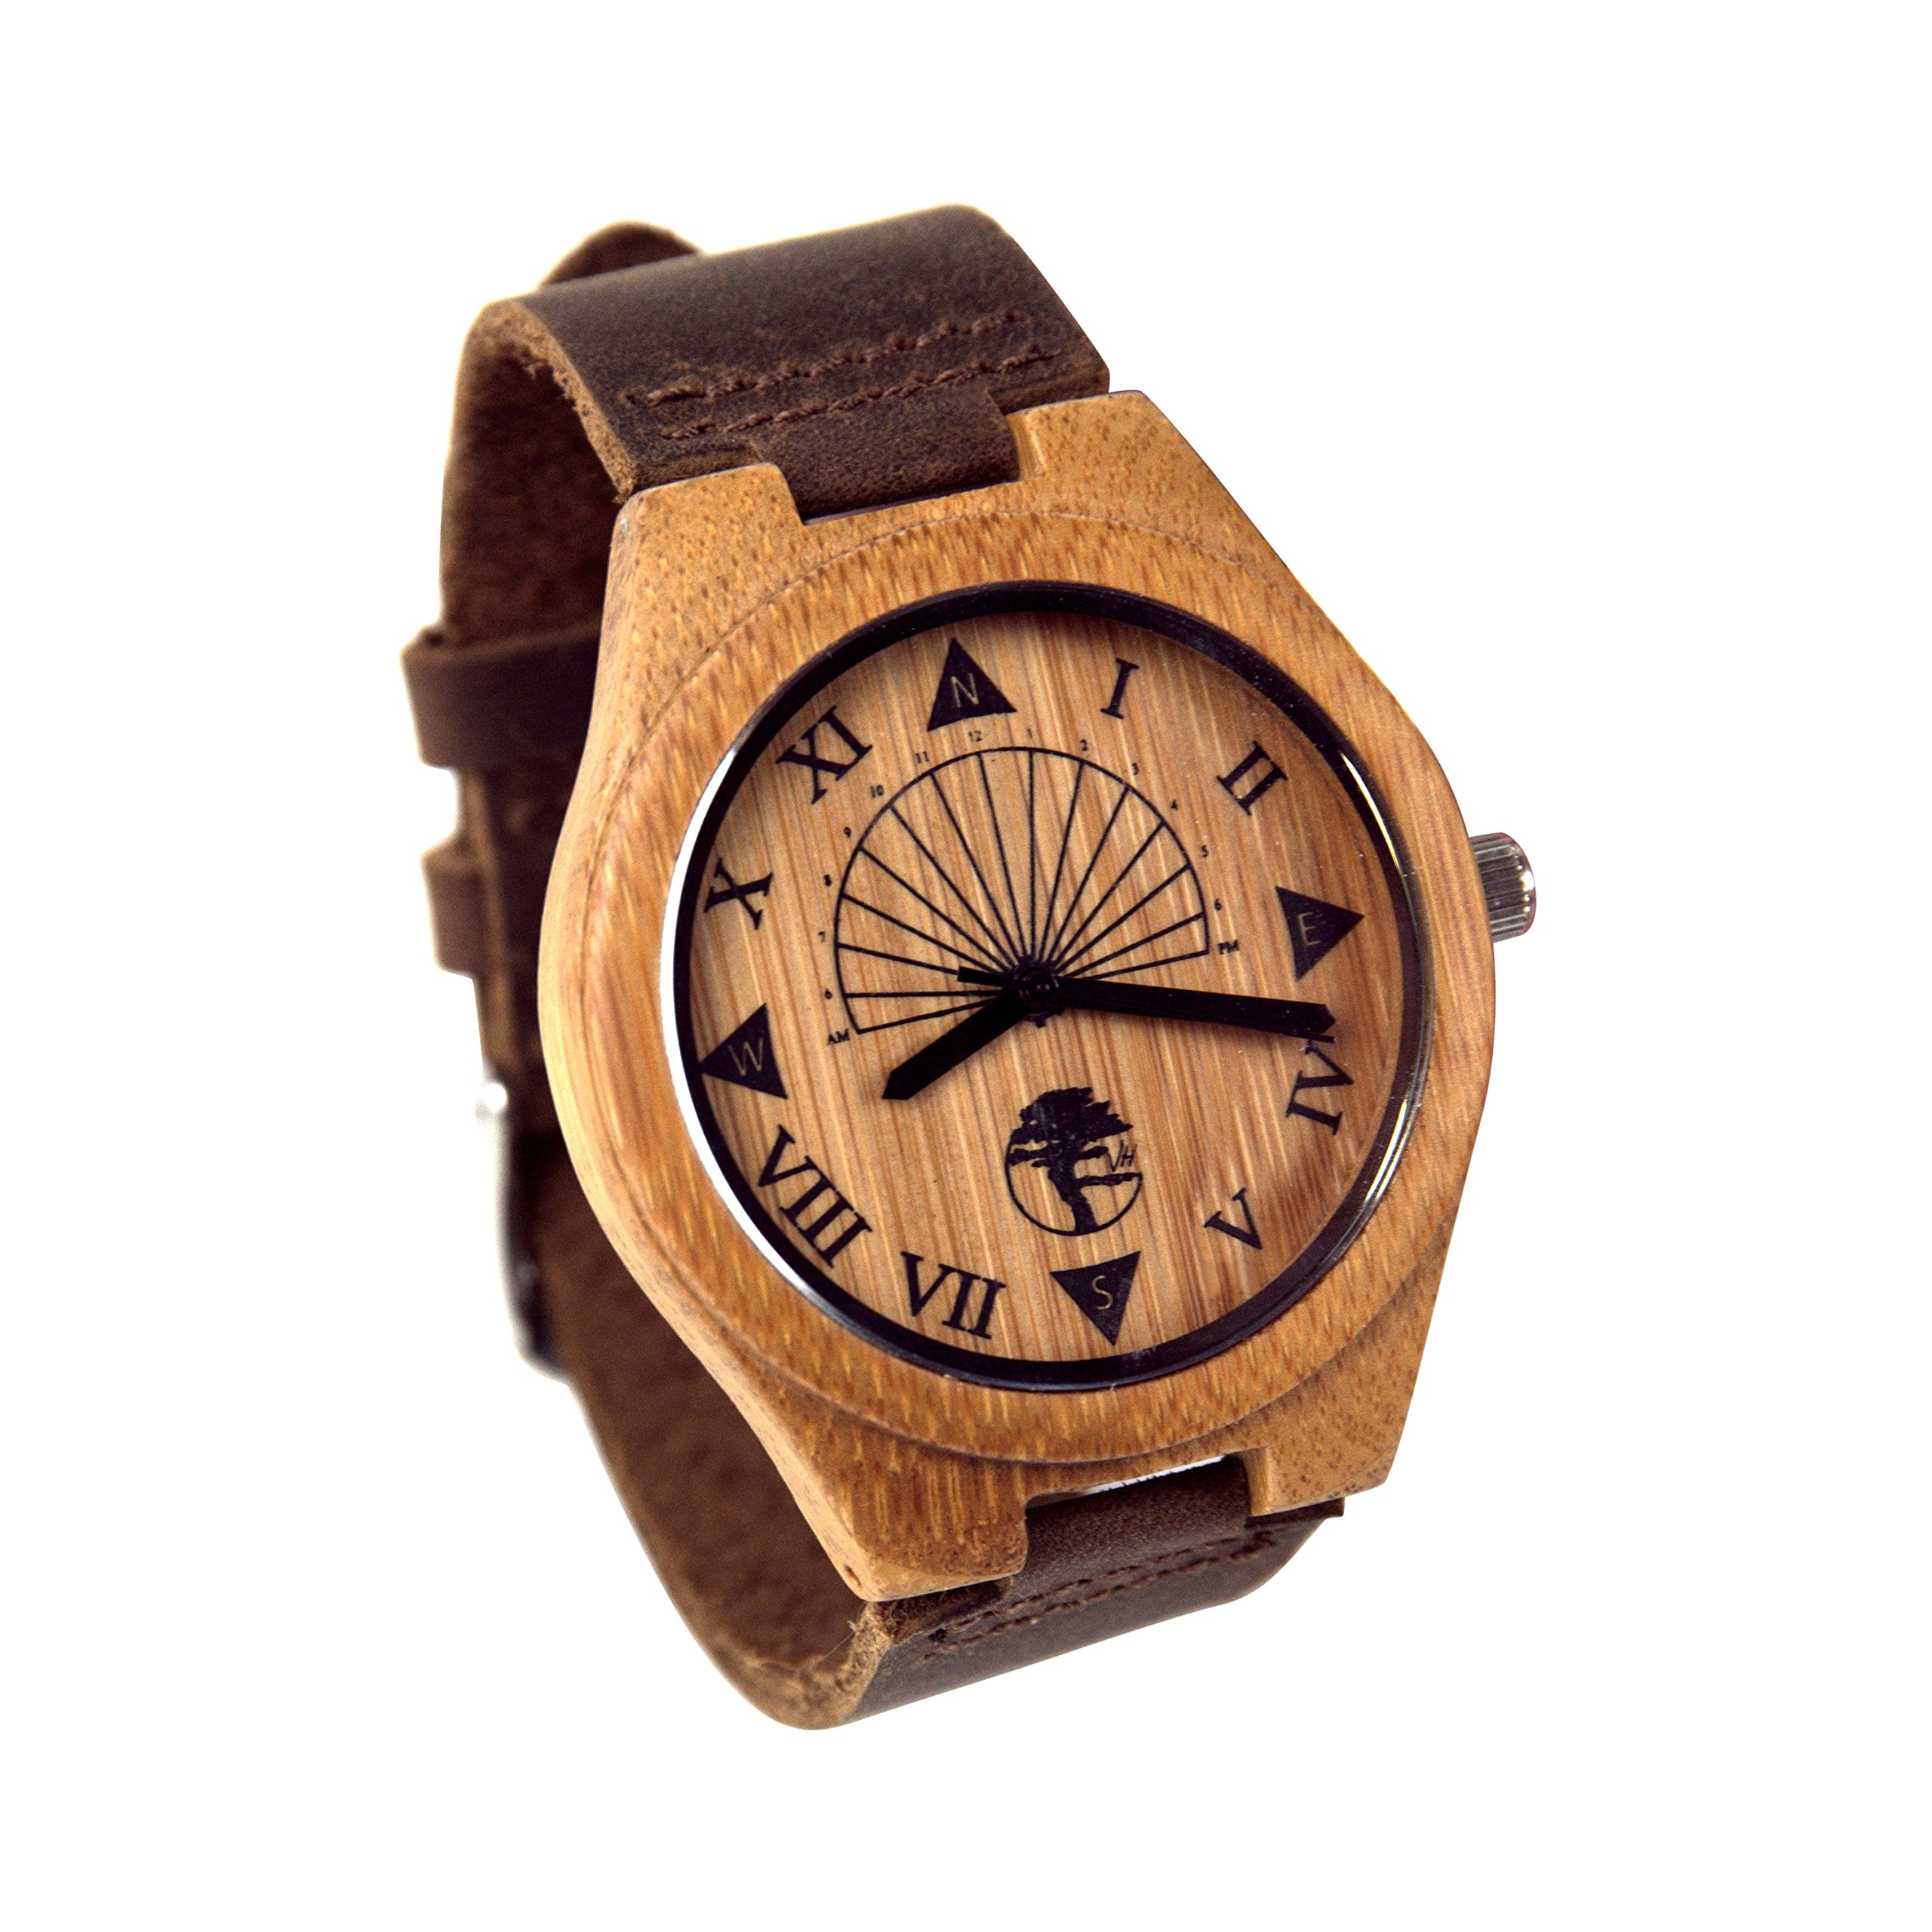 Viable Harvest Men's Wood Watch, Unique Sundial Design, Natural Bamboo, Genuine Leather and Gift Box (Brown)